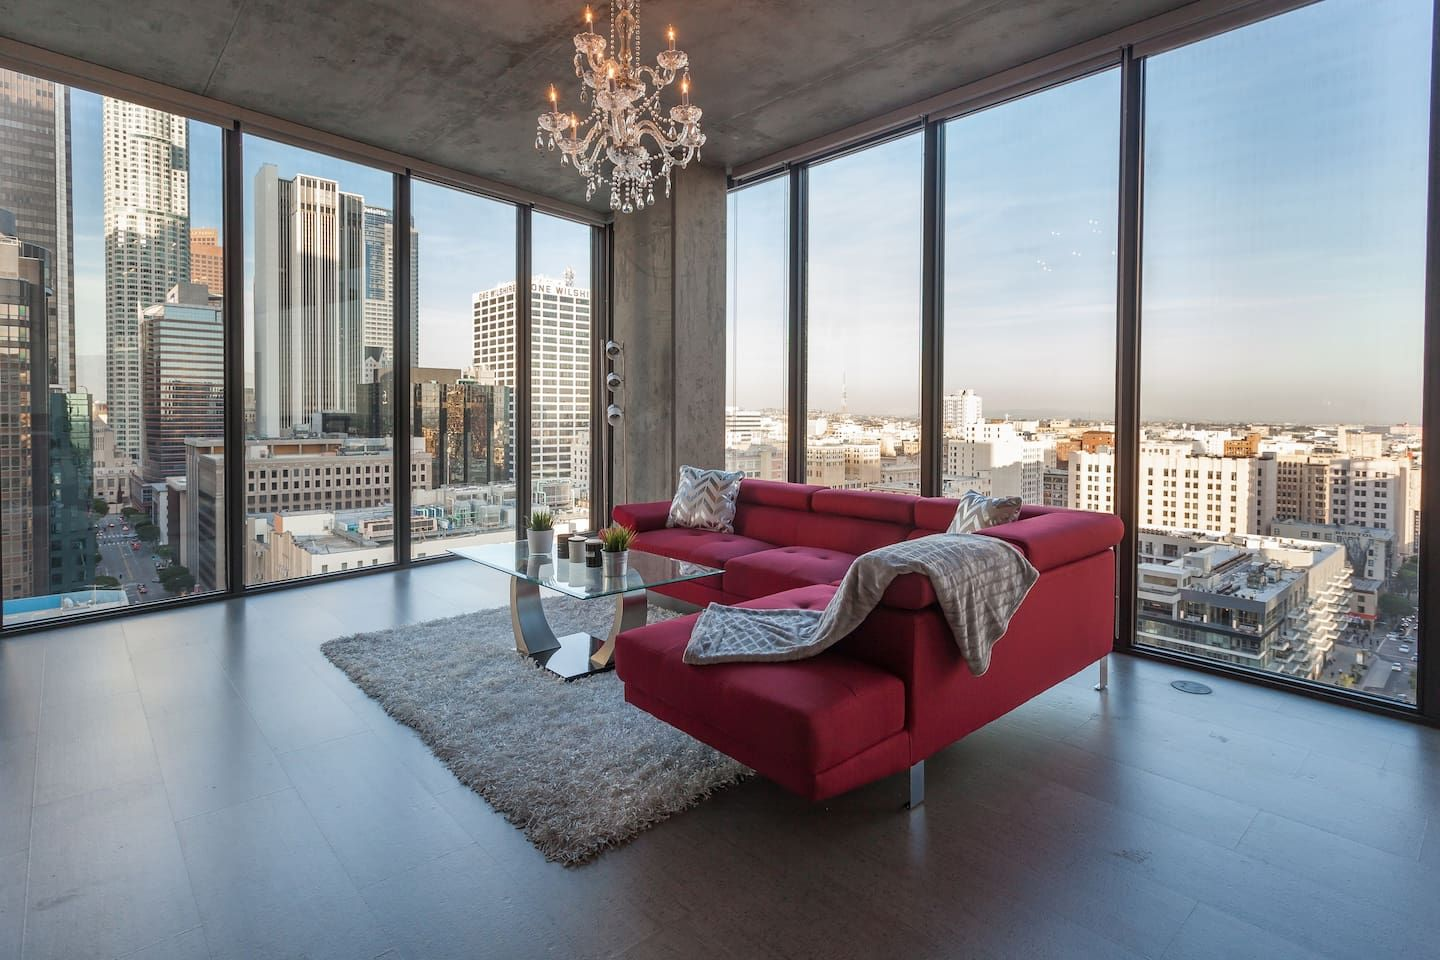 Urban Downtown La Floor To Ceiling Penthouse Apartments For Rent In Los Angeles Floor To Ceiling Windows Luxury Penthouse Apartment Decor